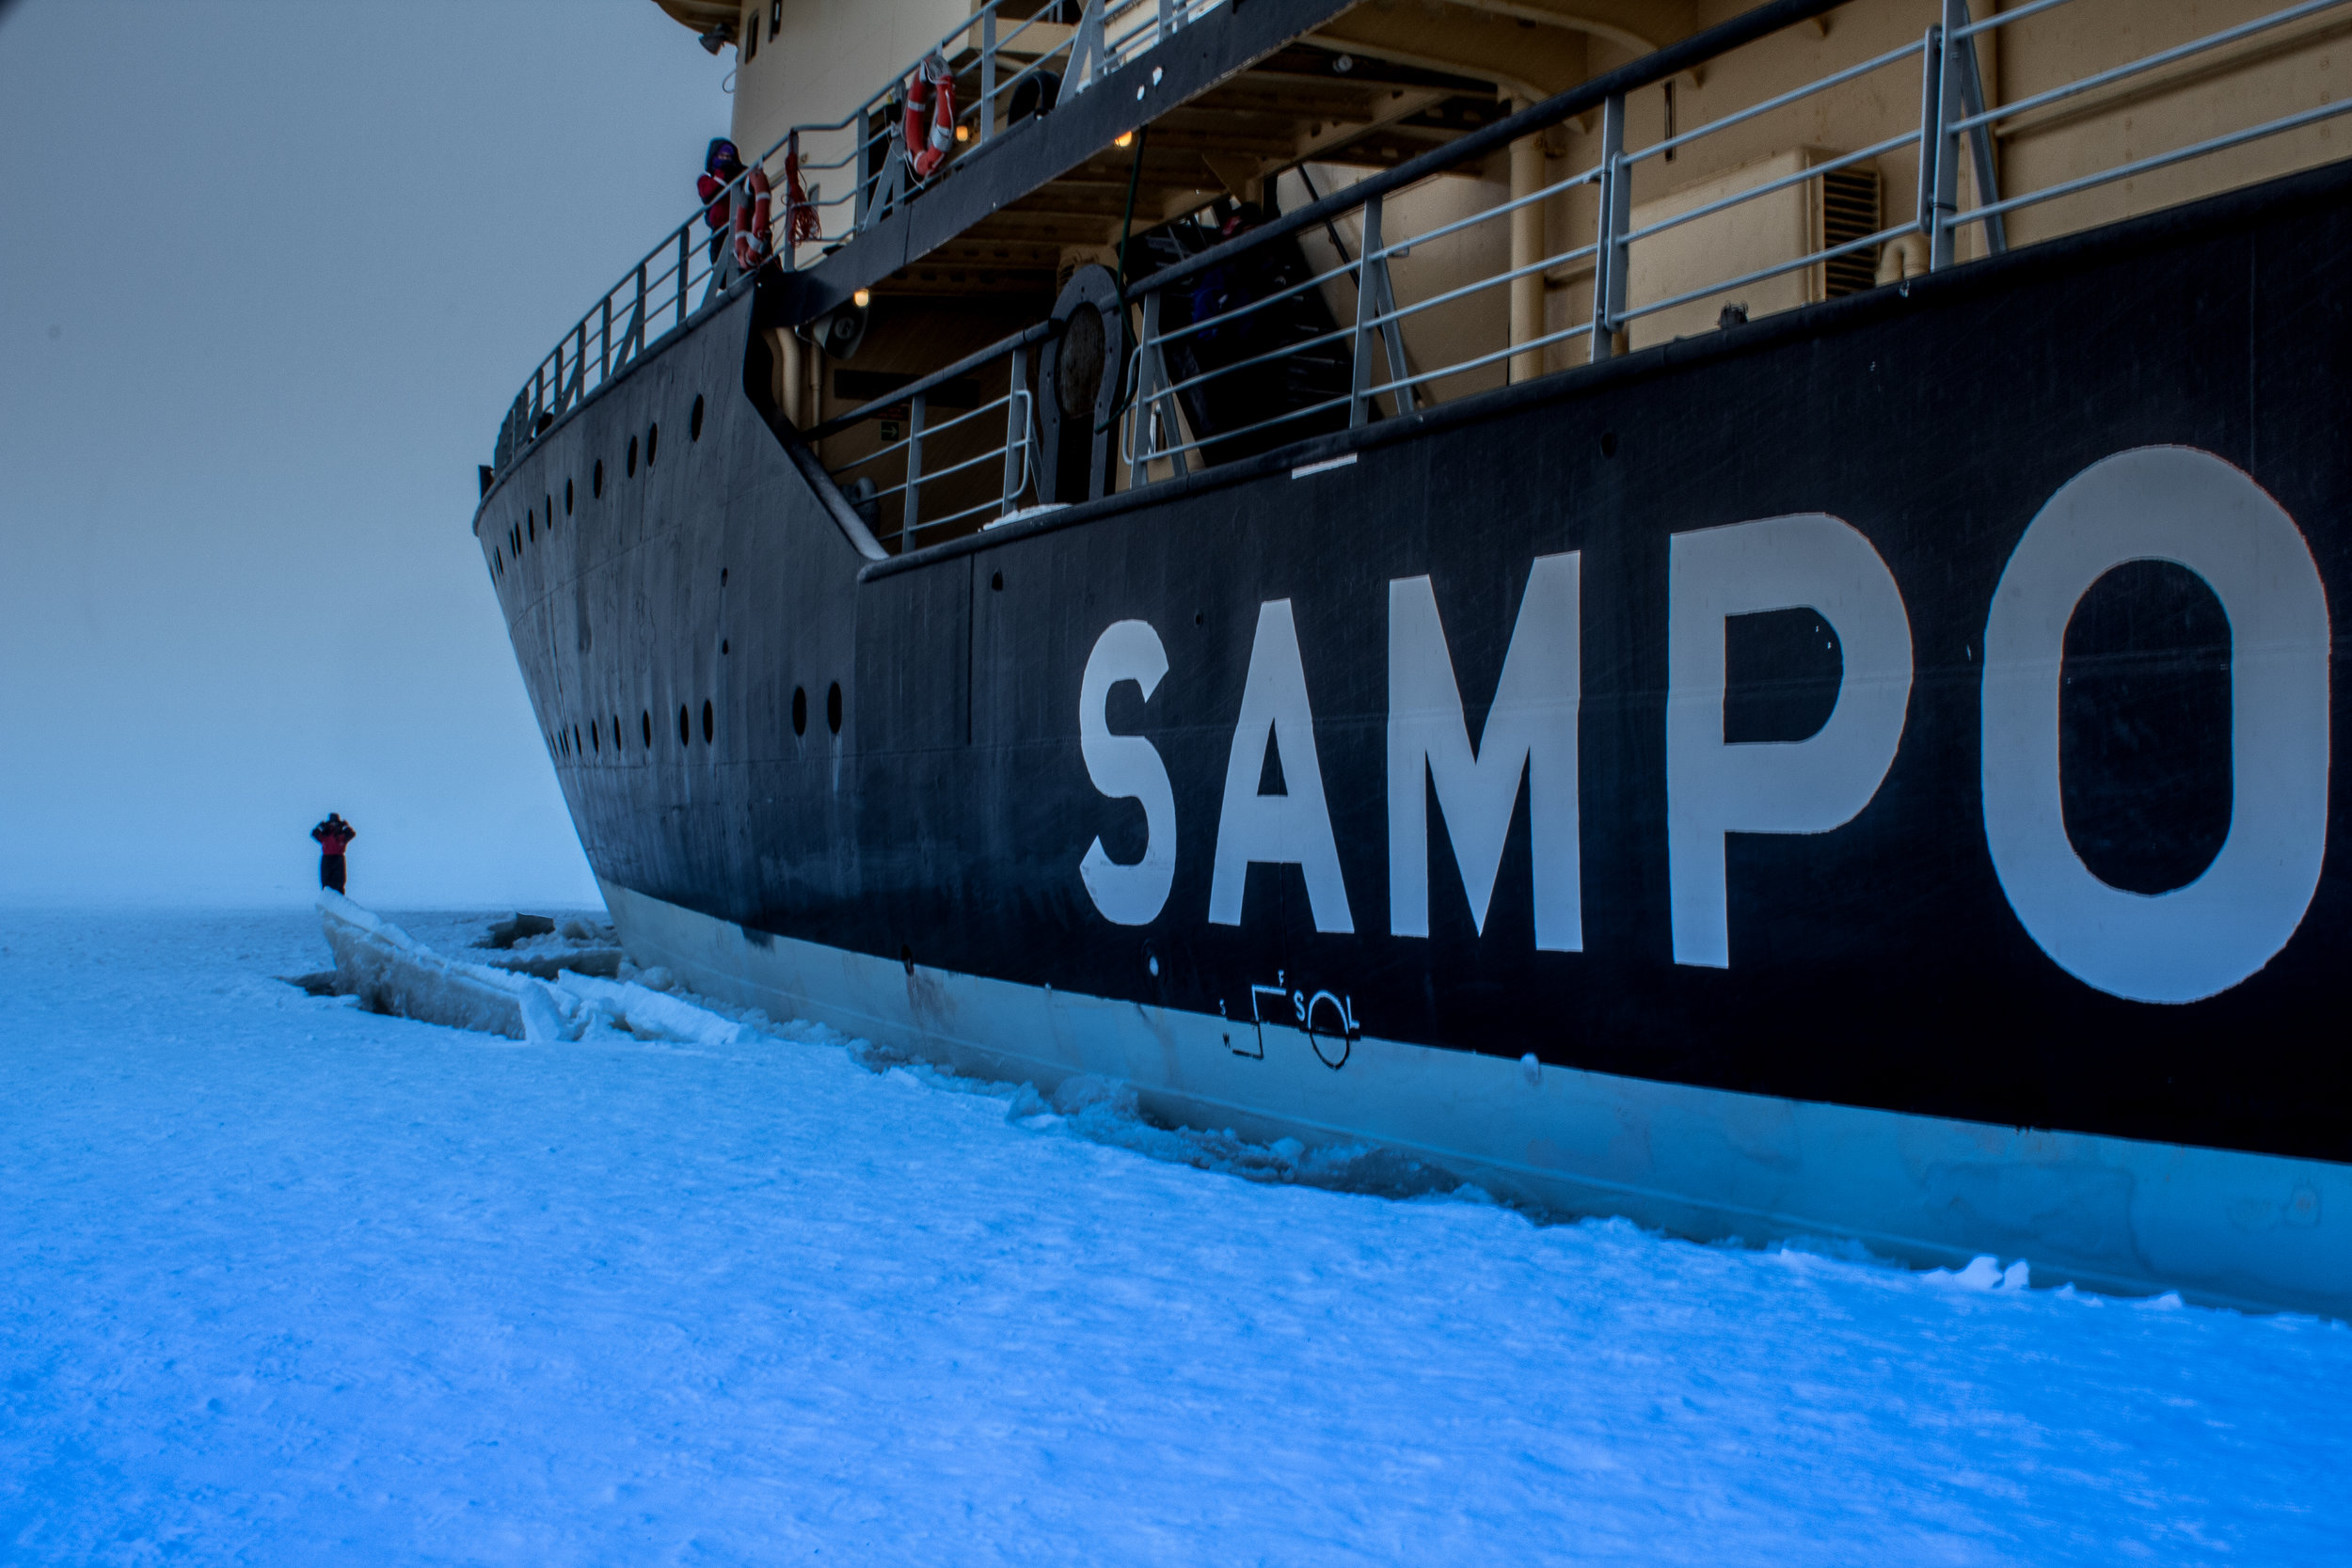 Icebreaker Sampo Cruise - Things to do in Lapland Finland - Icebreaker on the Baltic Sea